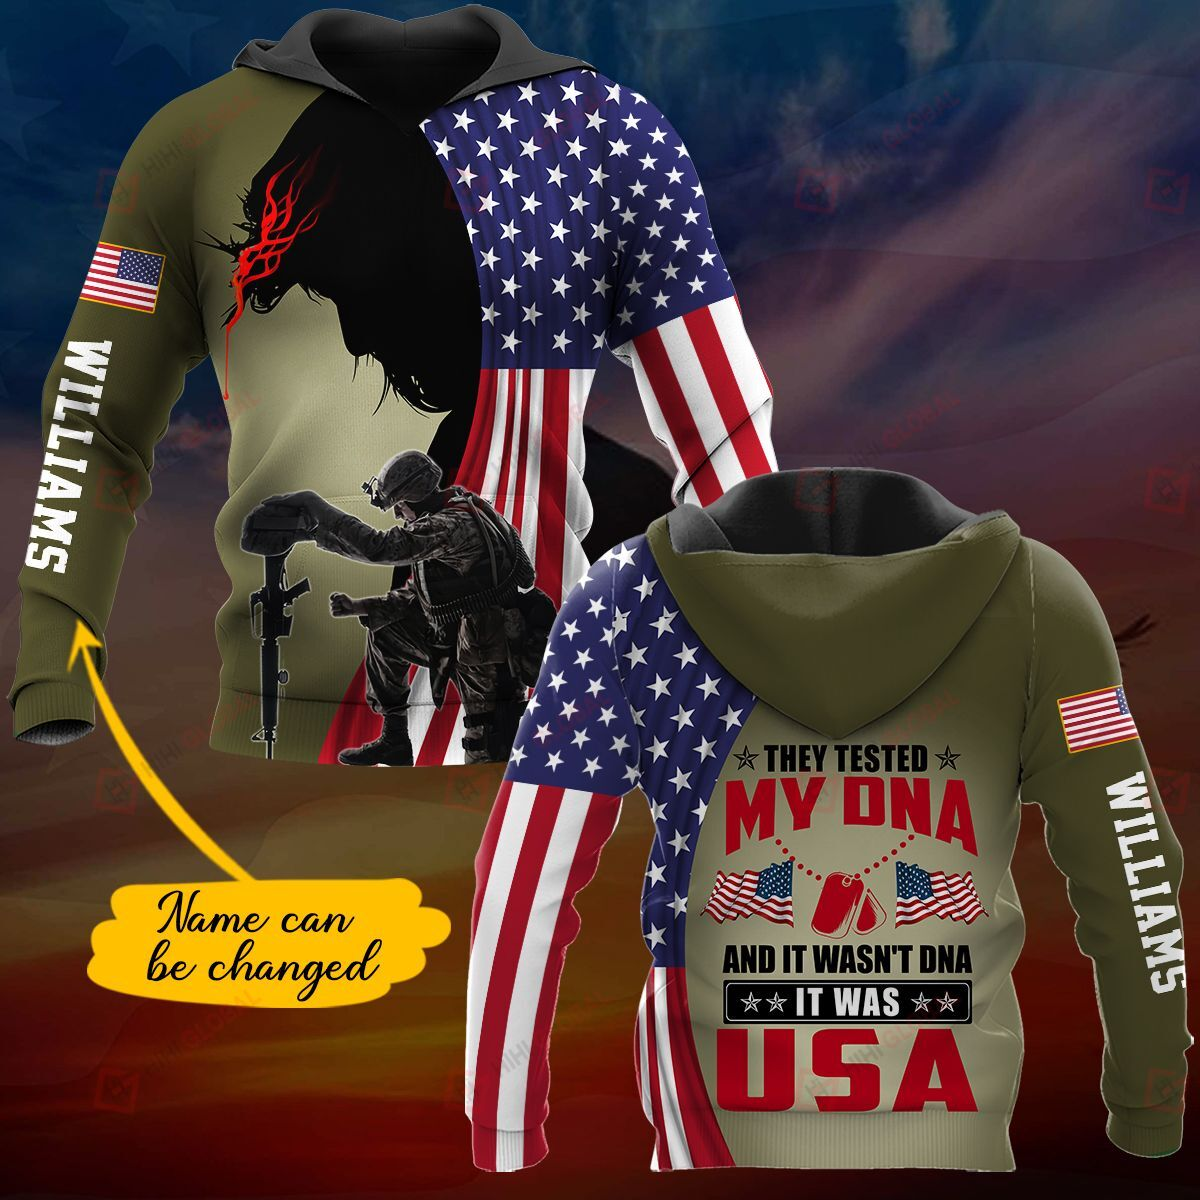 Custom Name 3D All Over Printed Shirt They tested my DNA It was USA - dark version